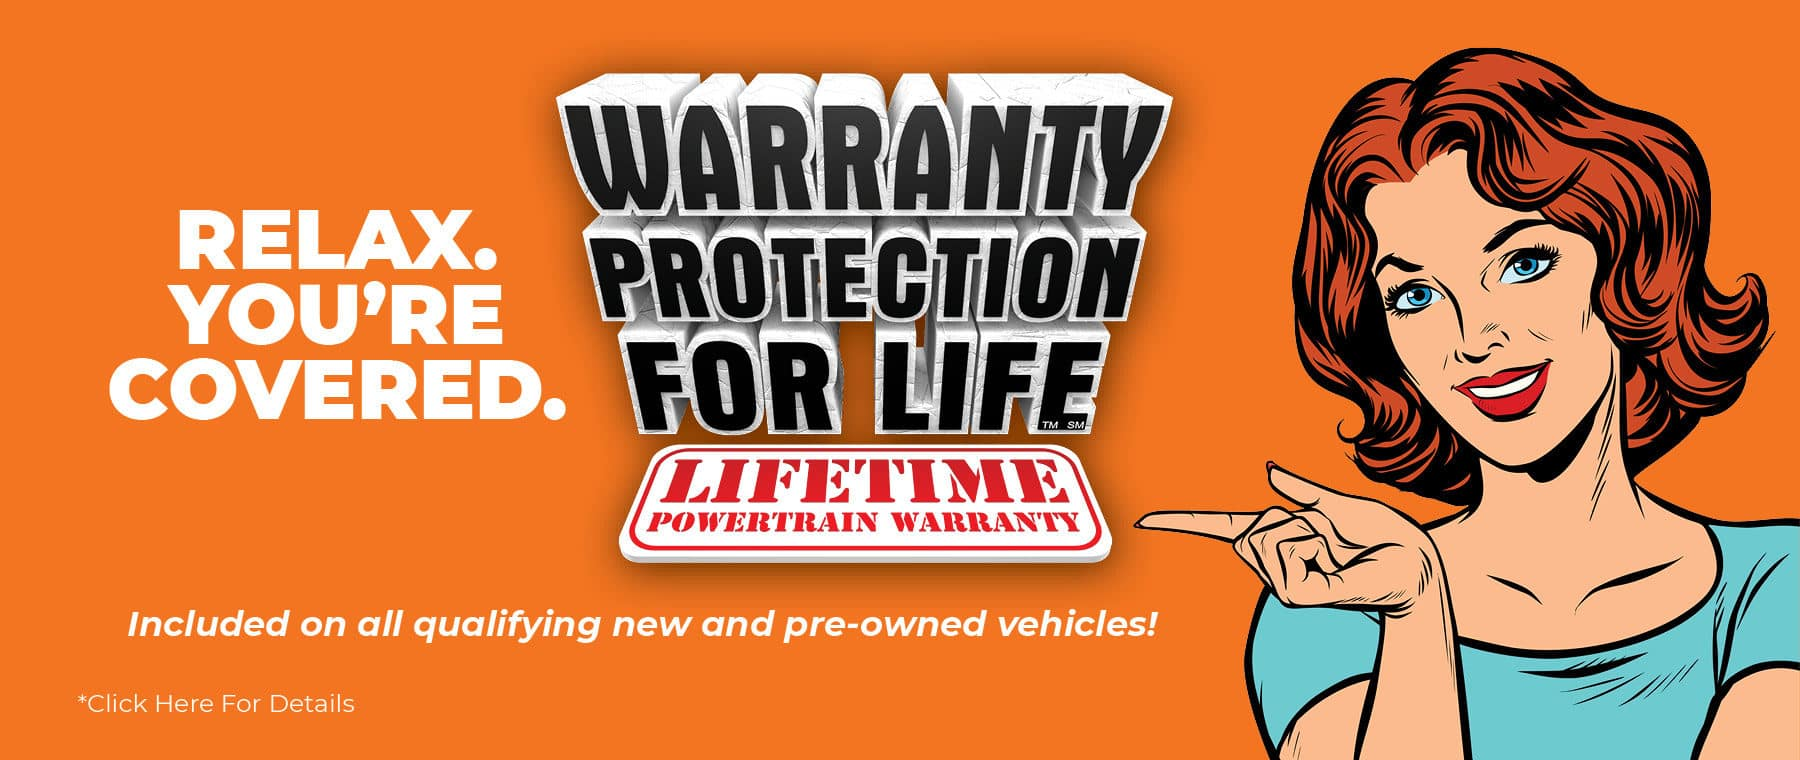 Relax. You're Covered. Only Sunset Includes Warranty Protection for Life on all qualifying new and used vehicles!